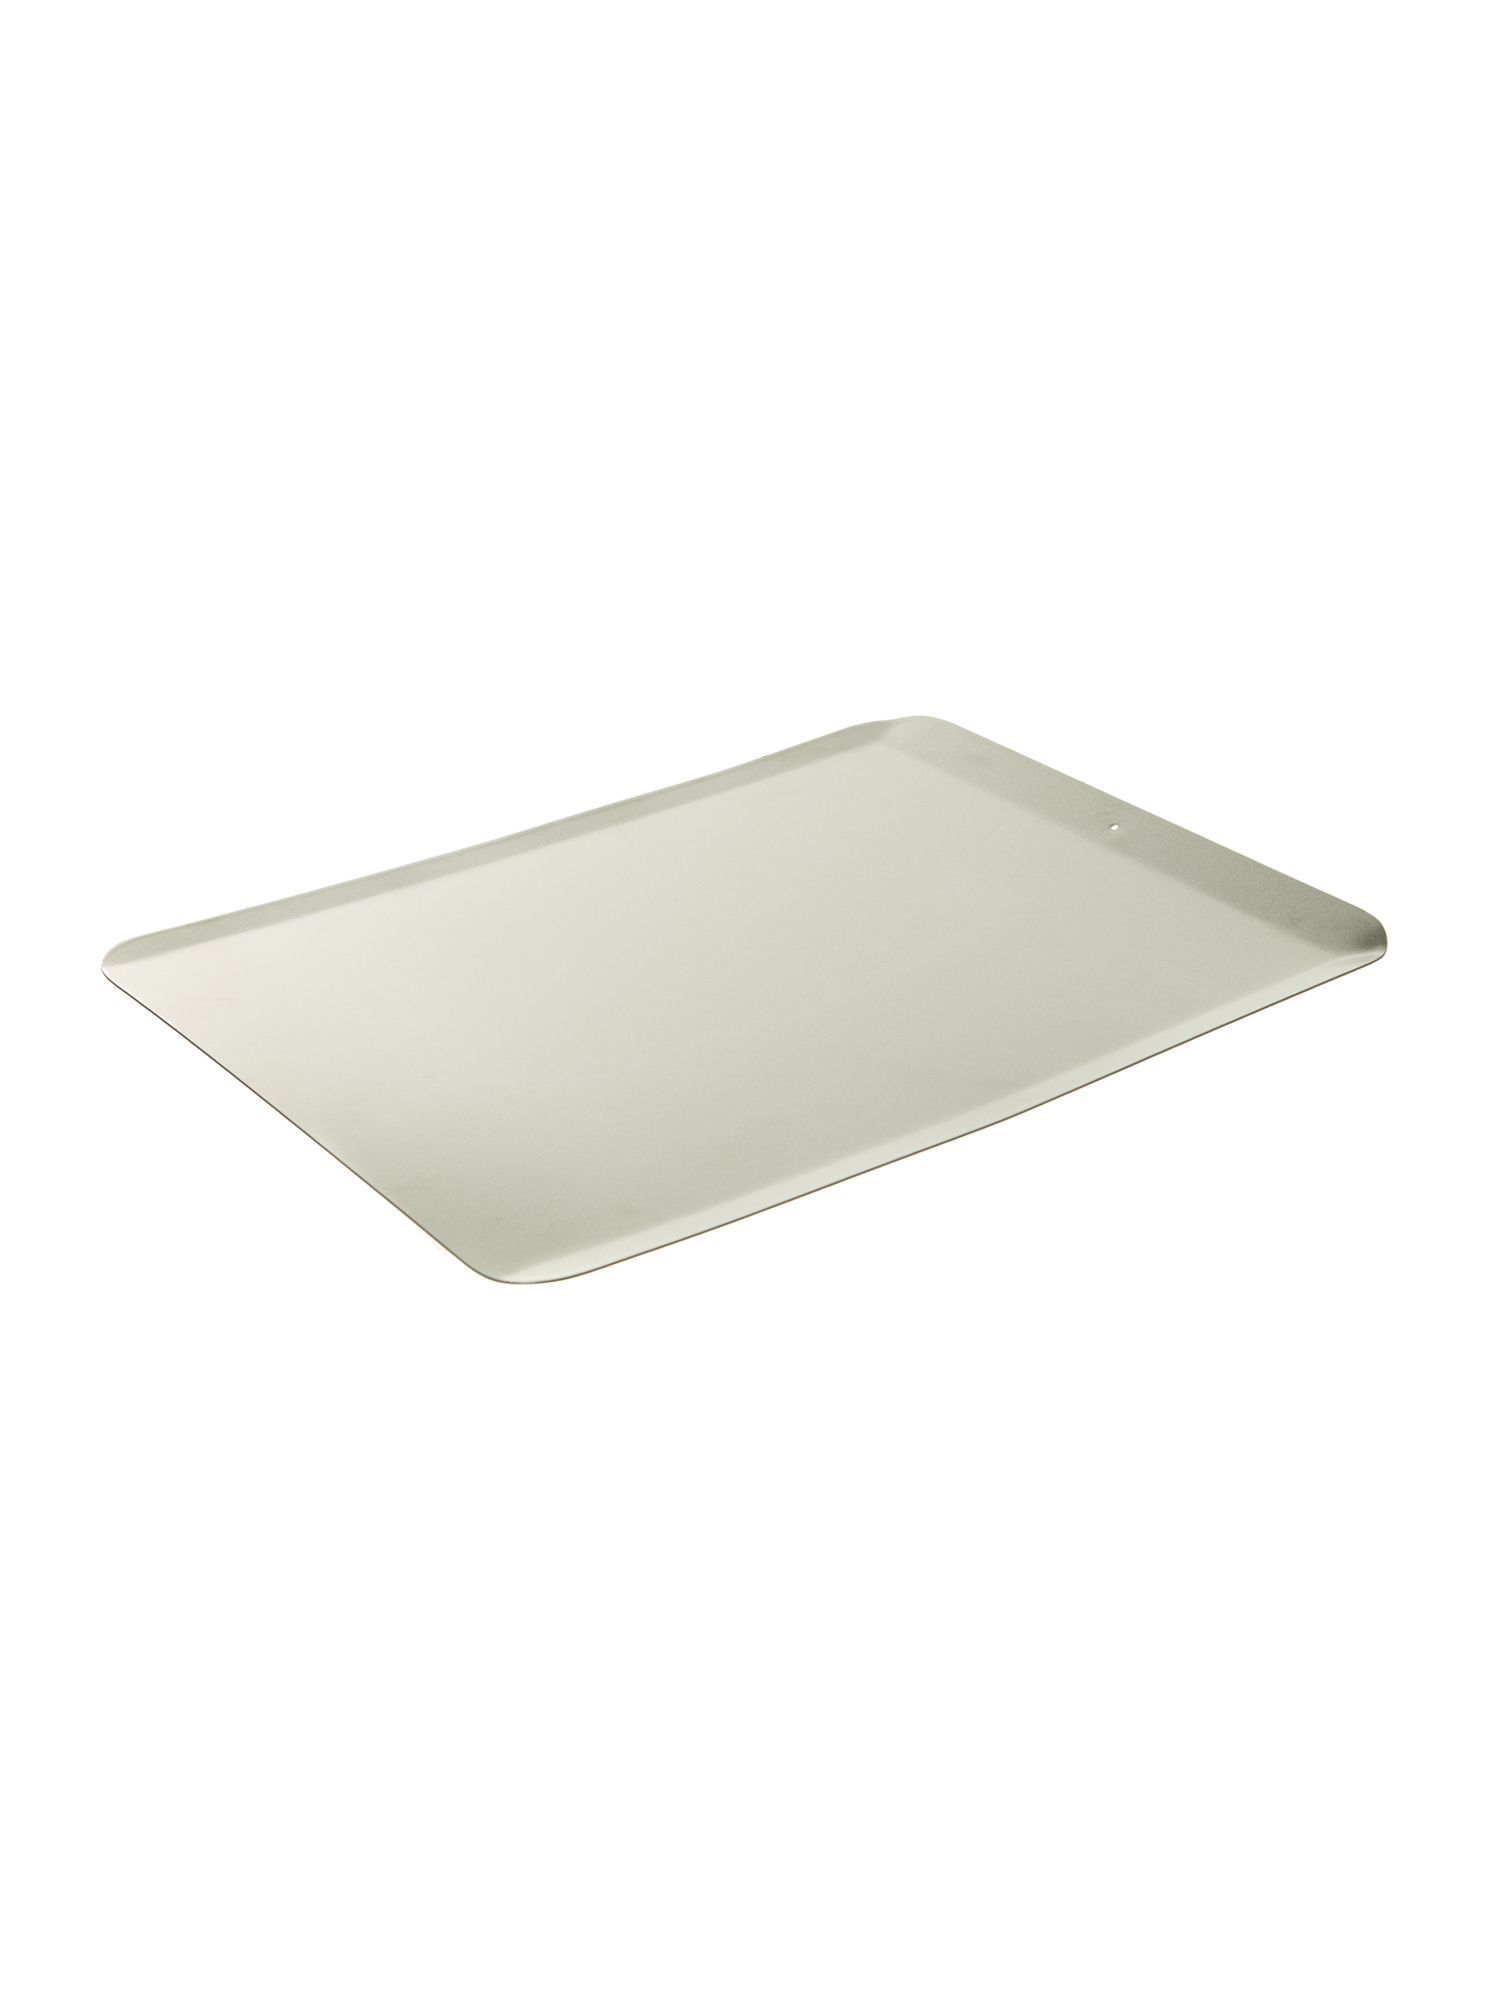 Cookie baking tray, 33cm